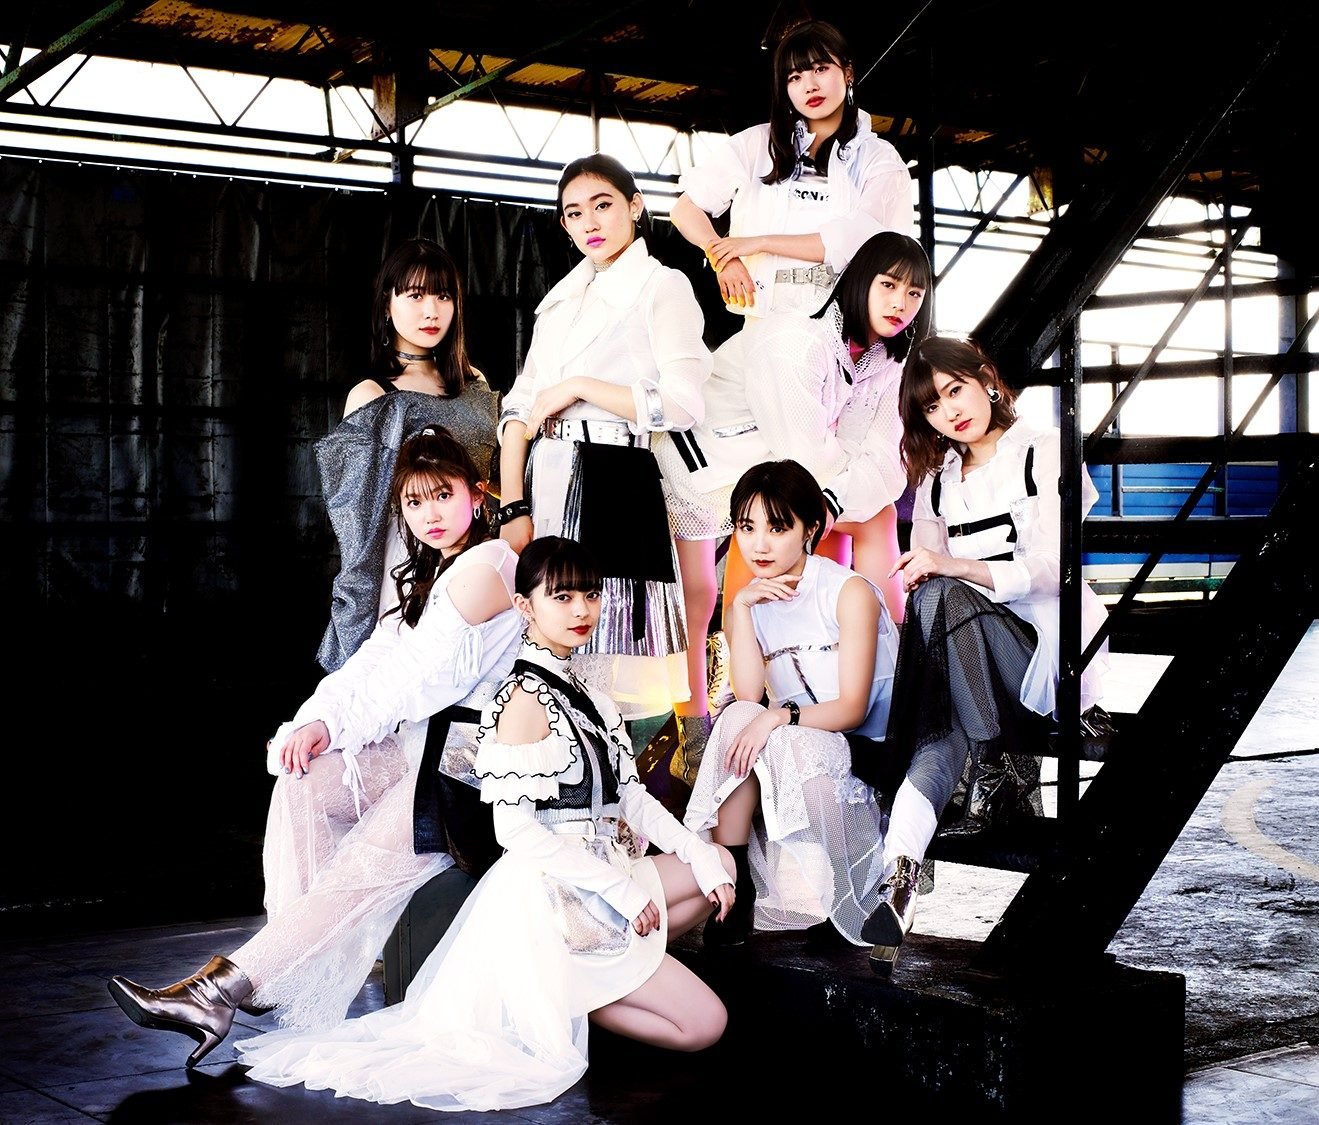 『Hello! Project 2020 Autumn 〜The Ballad〜 Extra Number』のアンジュルム